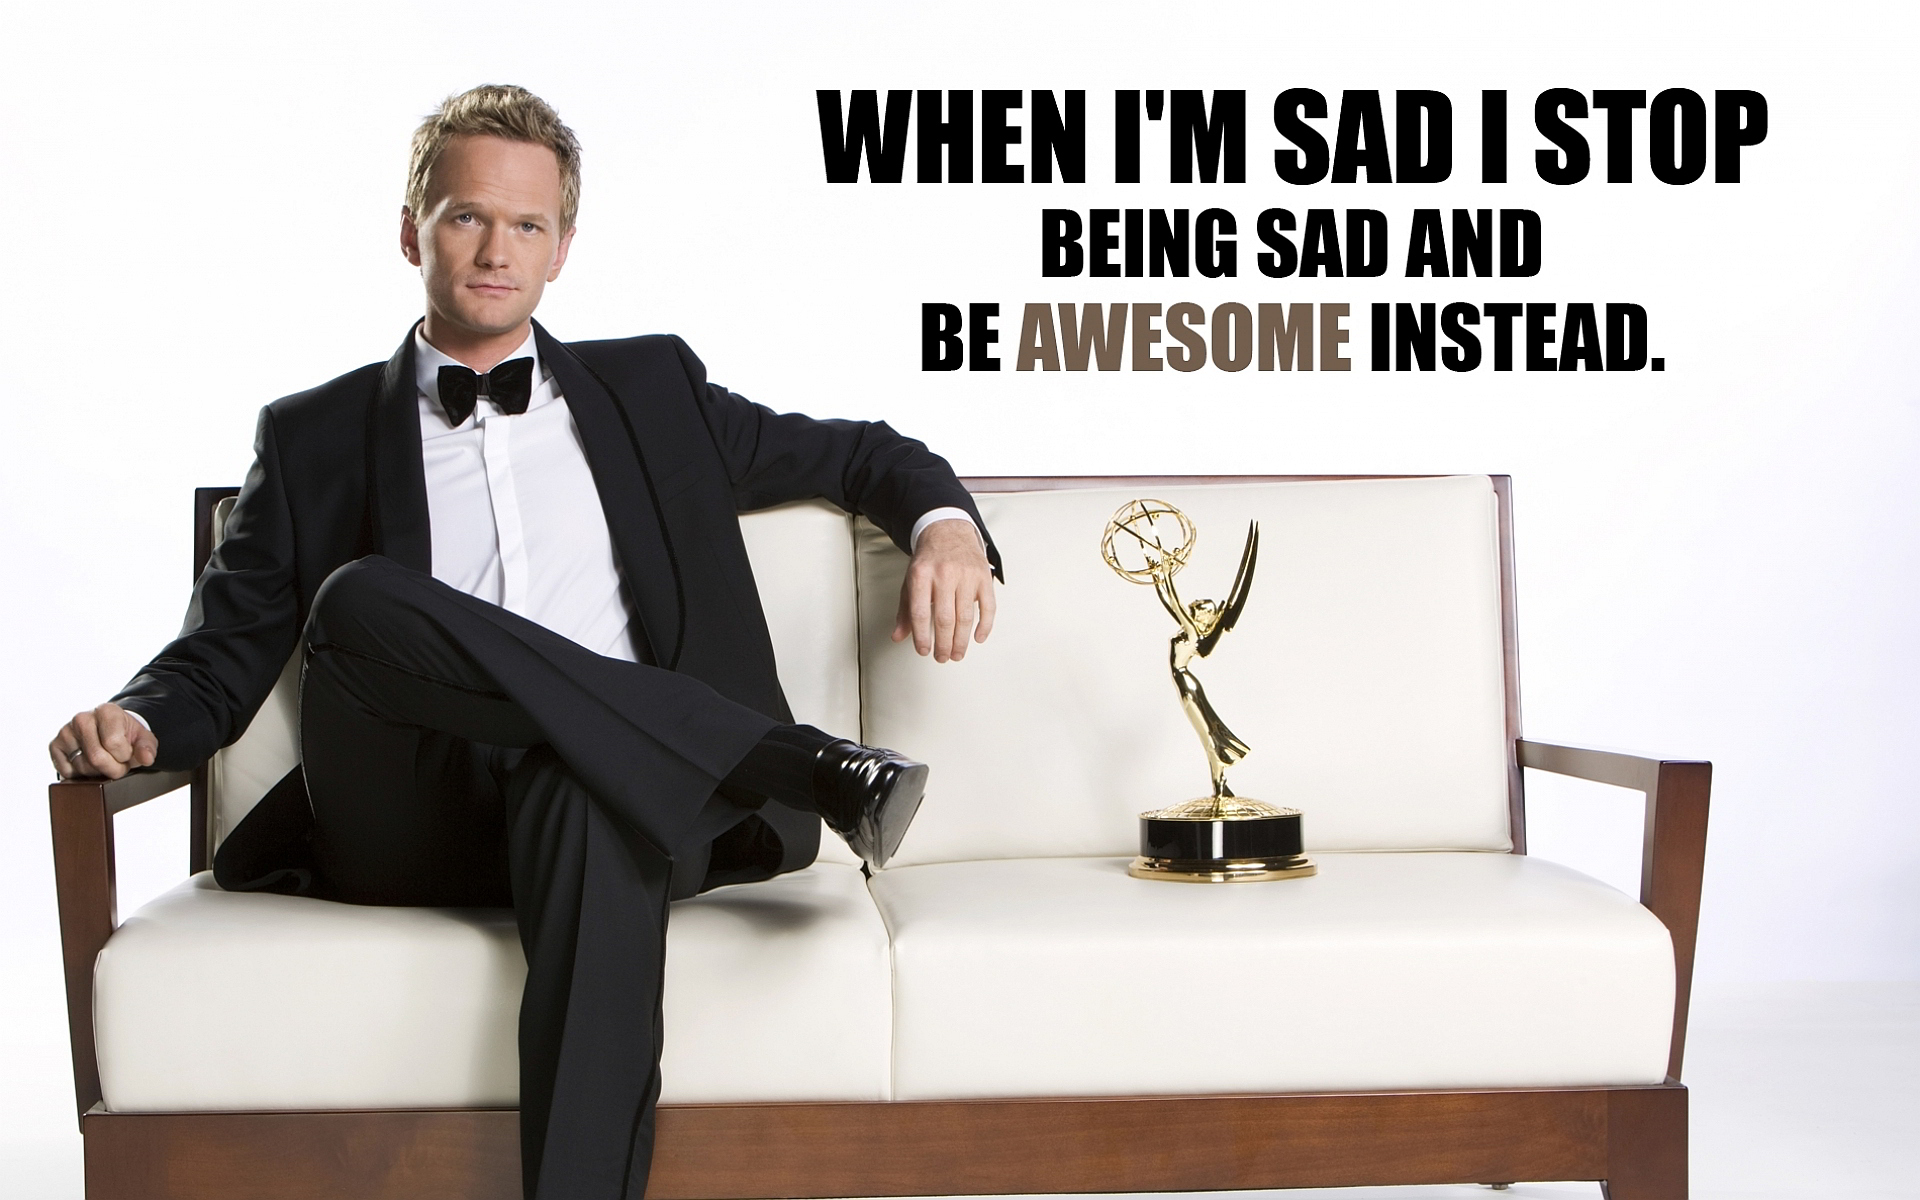 Wise Words From NPH [Image]